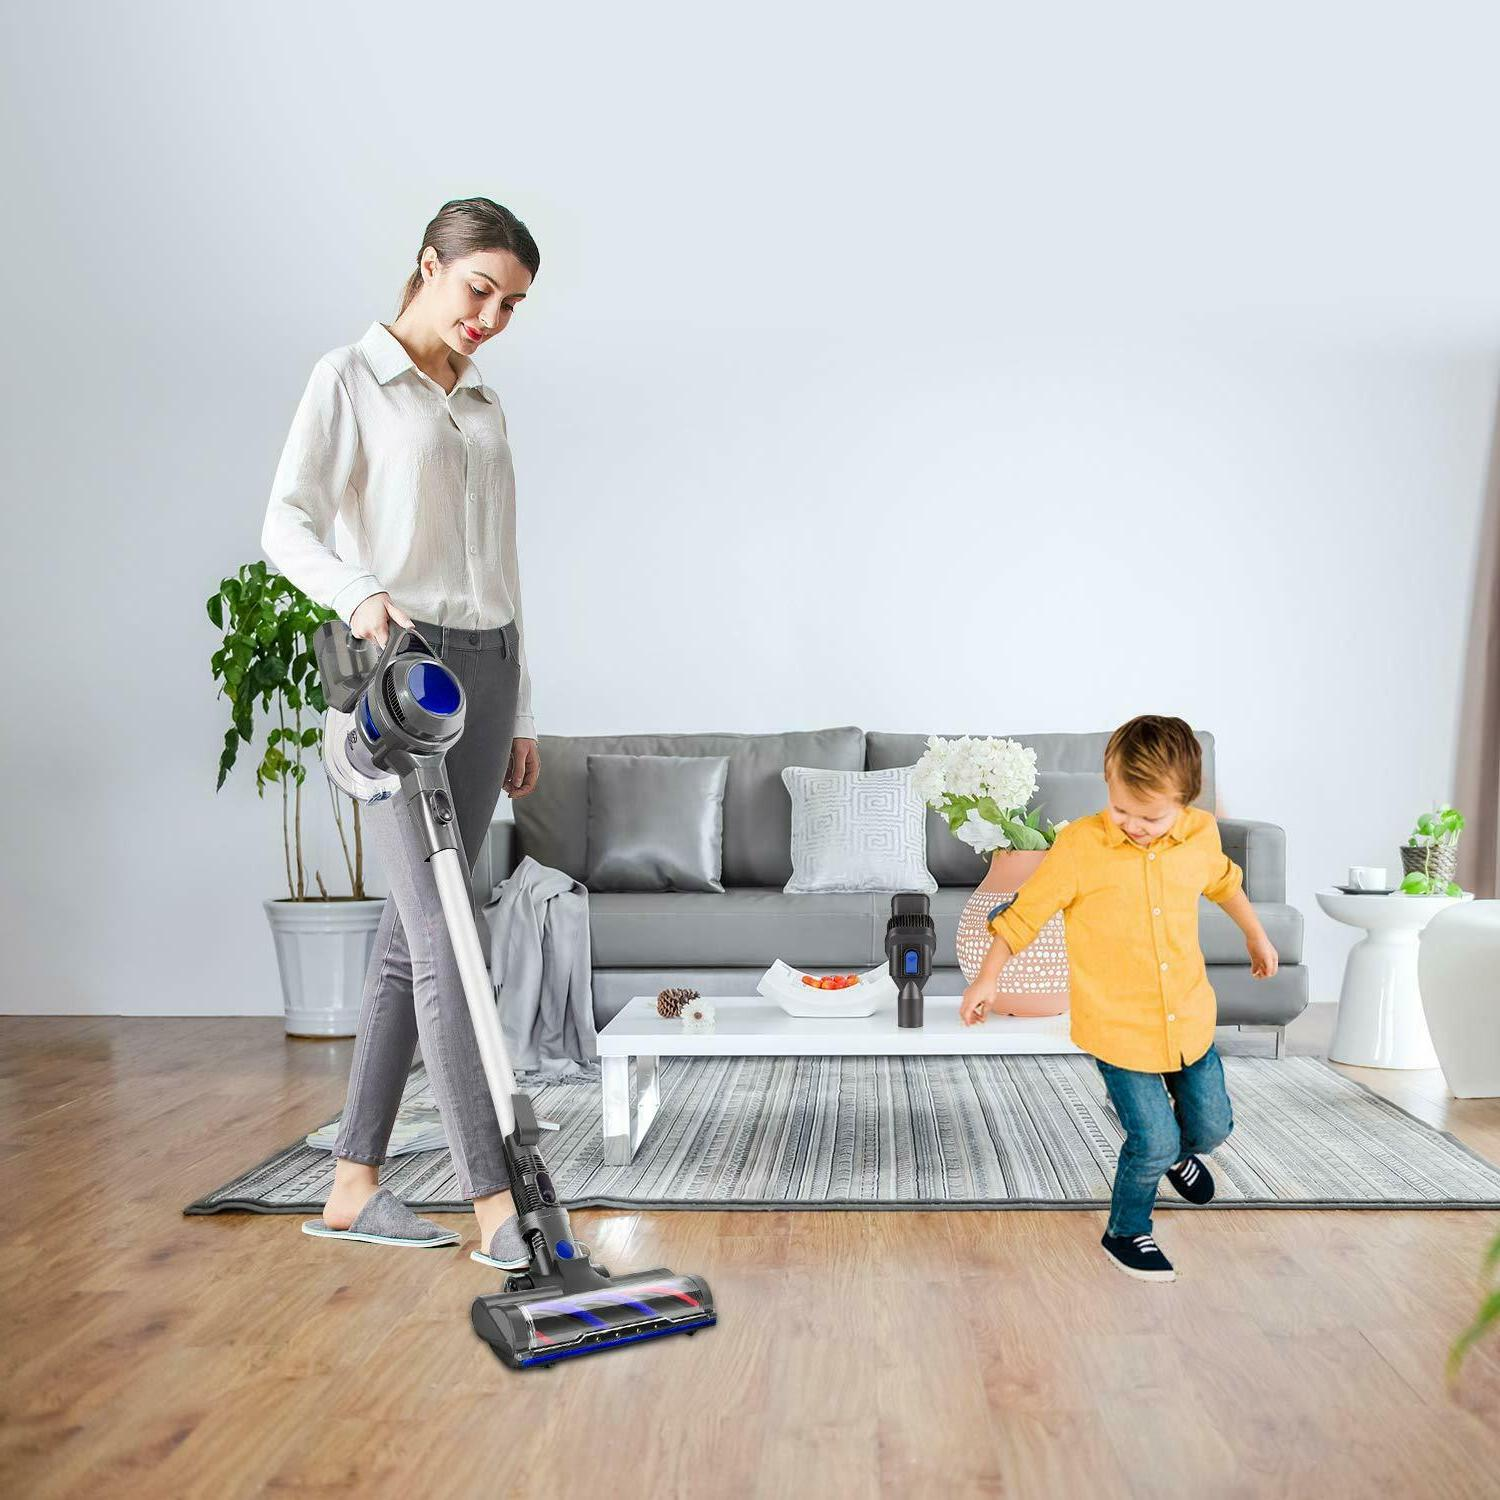 cordless vacuum handheld lightweight home and car